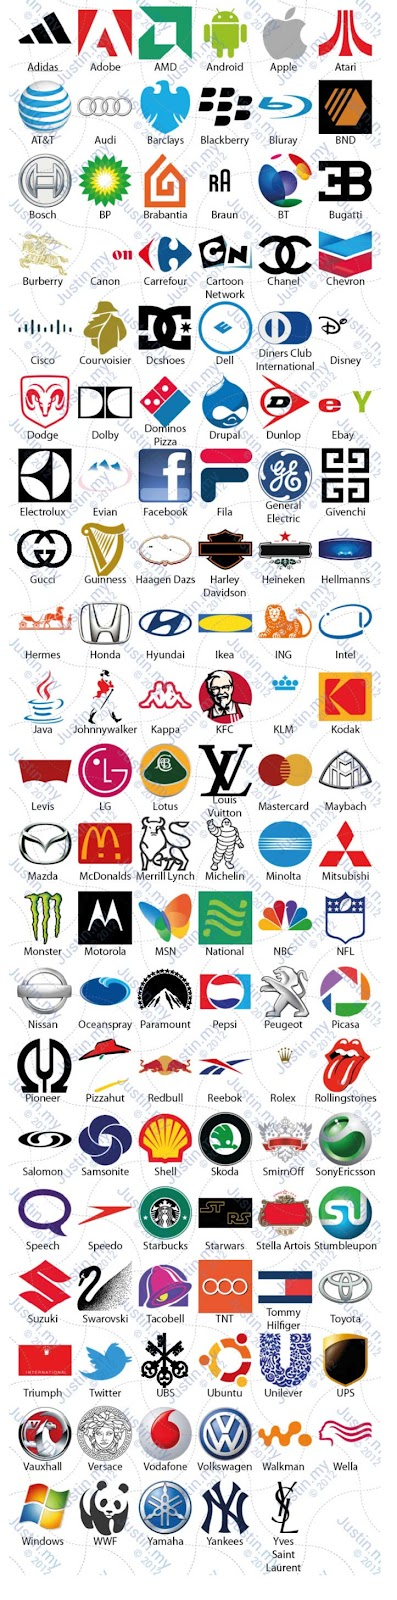 Clothing Logos Quiz Answers